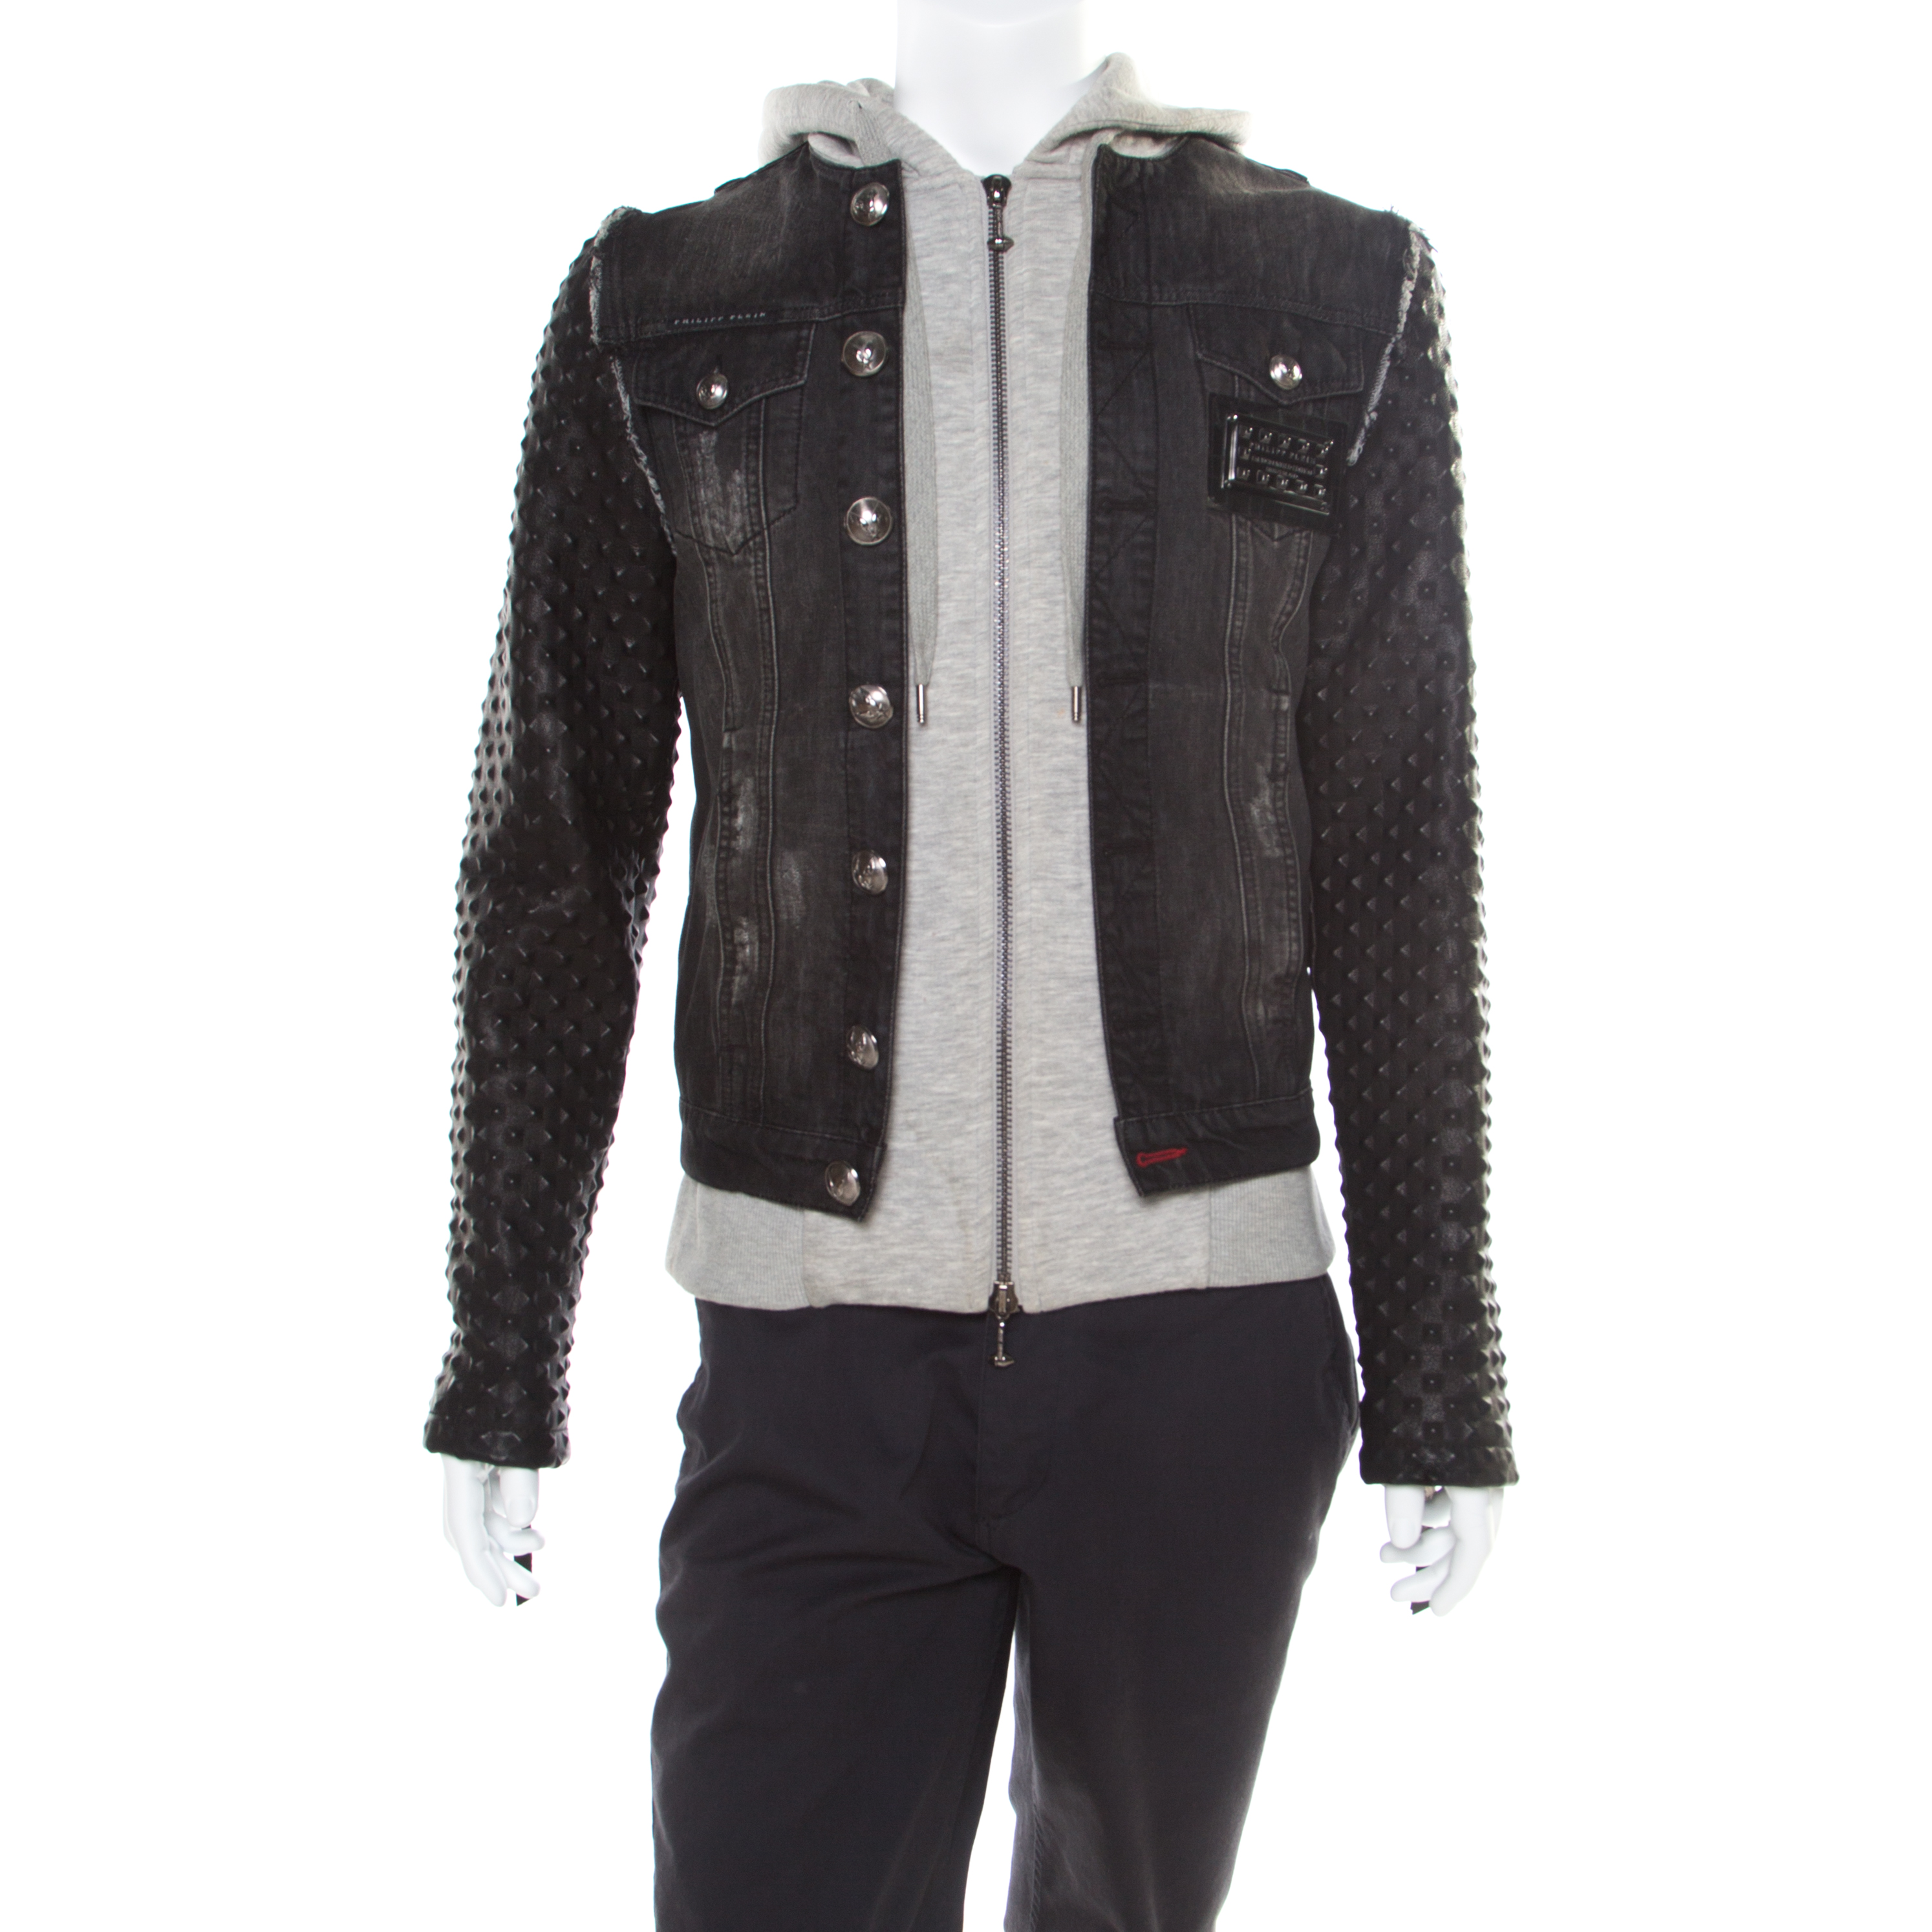 3a2d9211a Philipp Plein Illegal Fight Club Black Textured Leather and Denim Johnny's  Jacket M